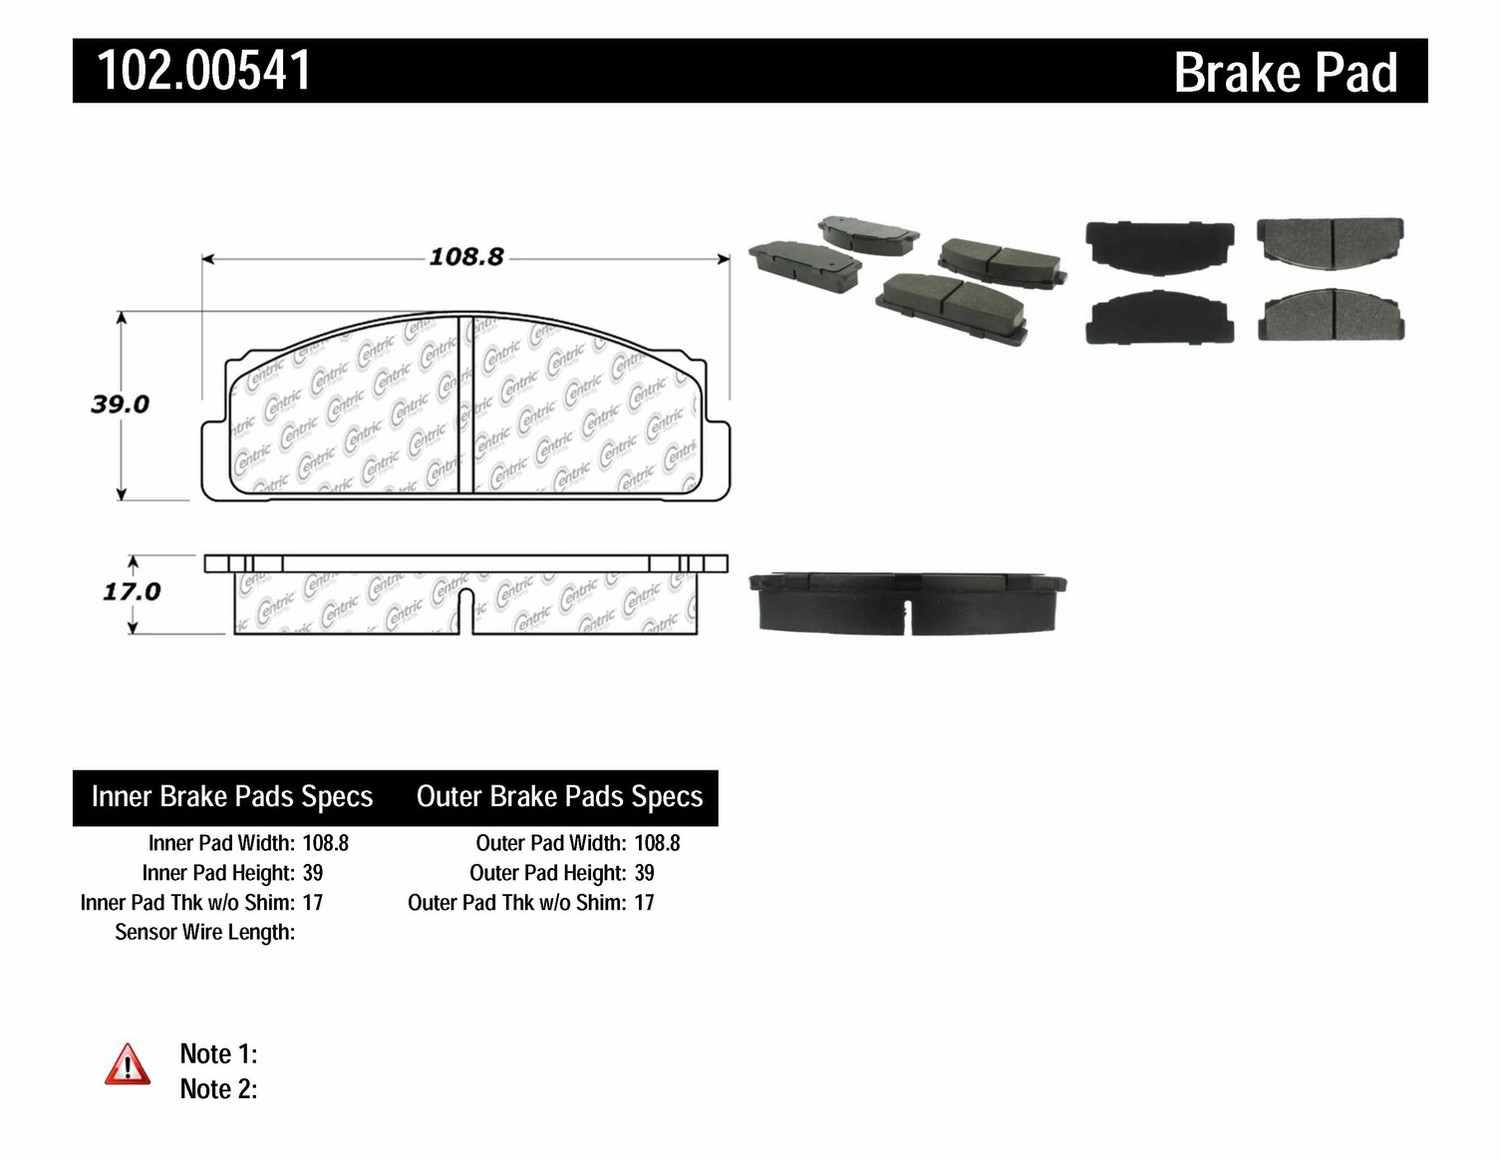 C-TEK BY CENTRIC - C-TEK Metallic Brake Pads-Preferred - CTK 102.00541